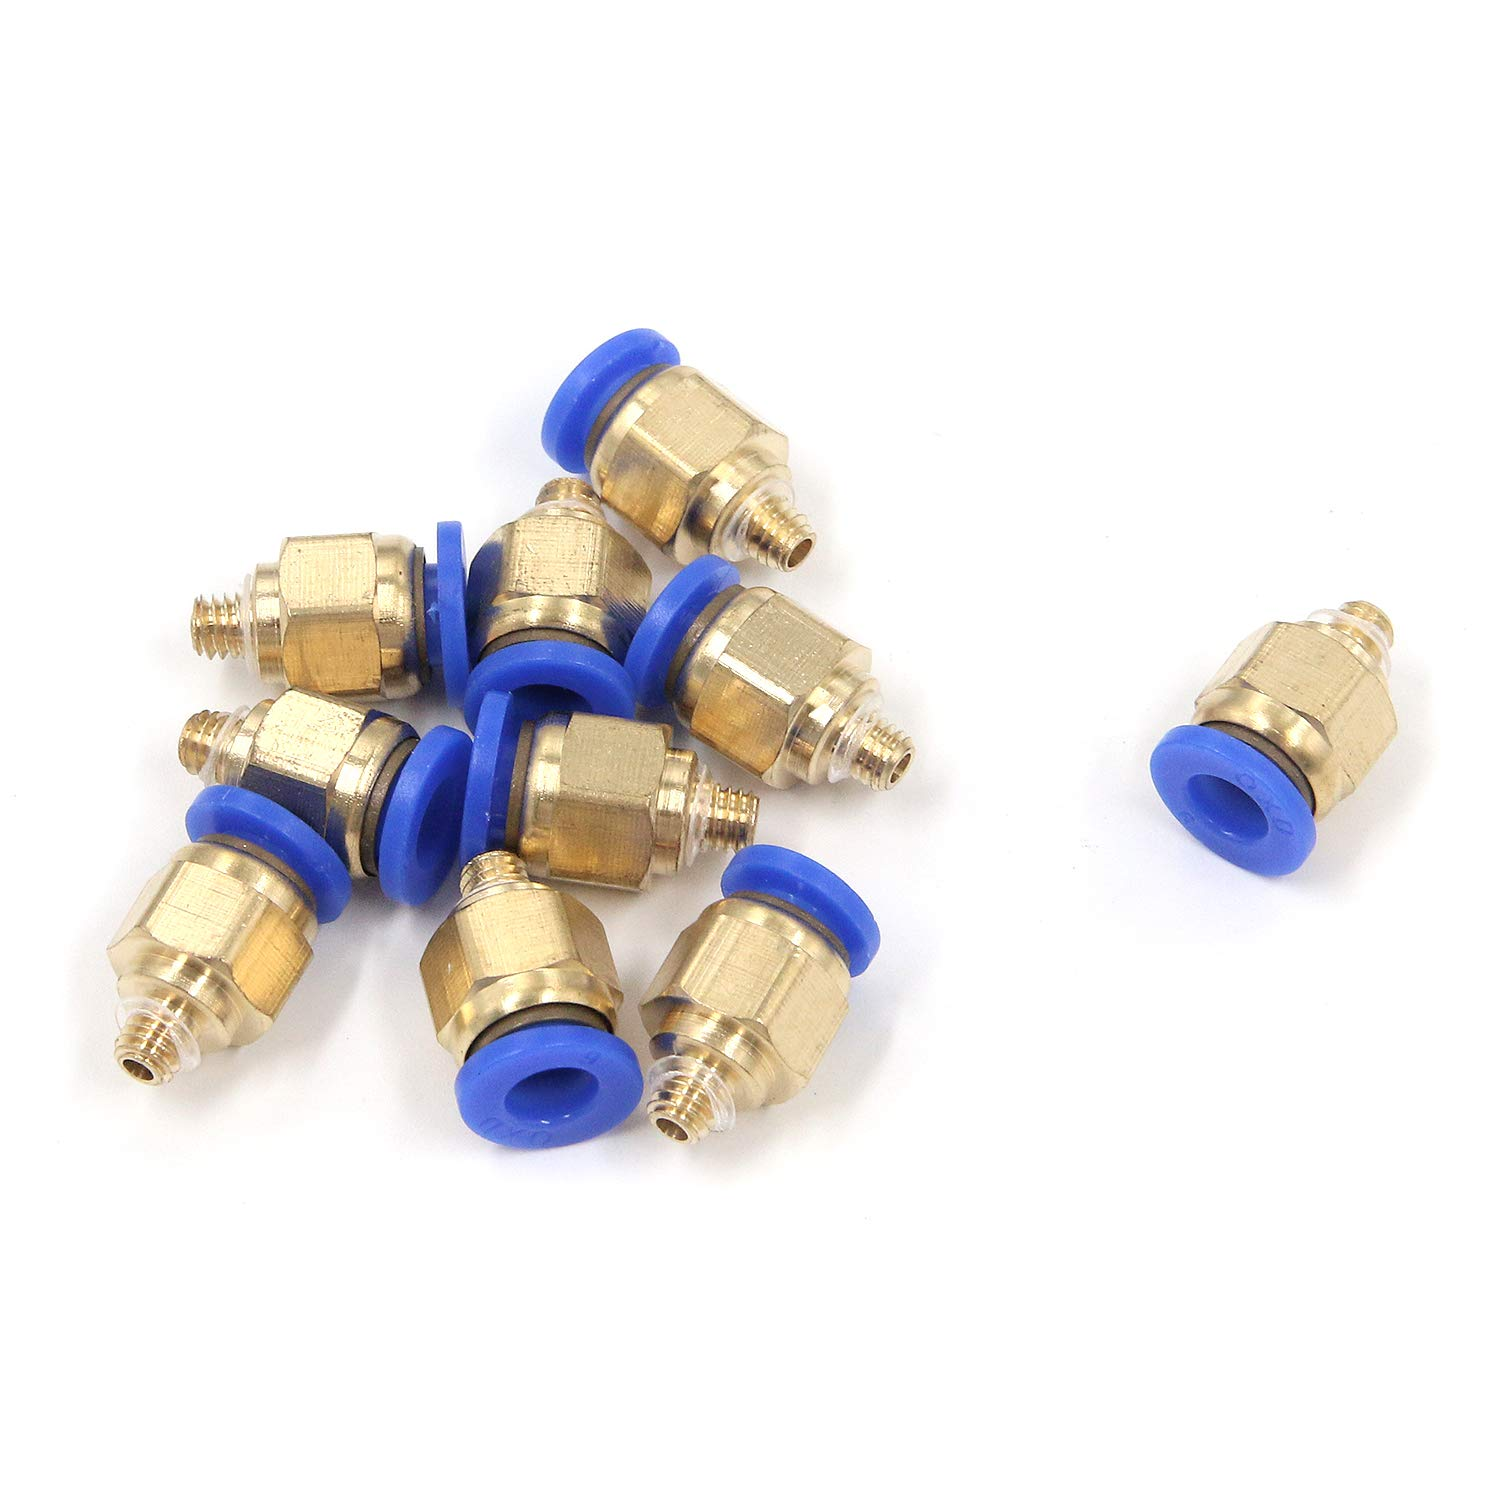 FarBoat 10Pcs PC6 M5 Thread Male Pneumatic Push Quick Fitting Connectors Copper